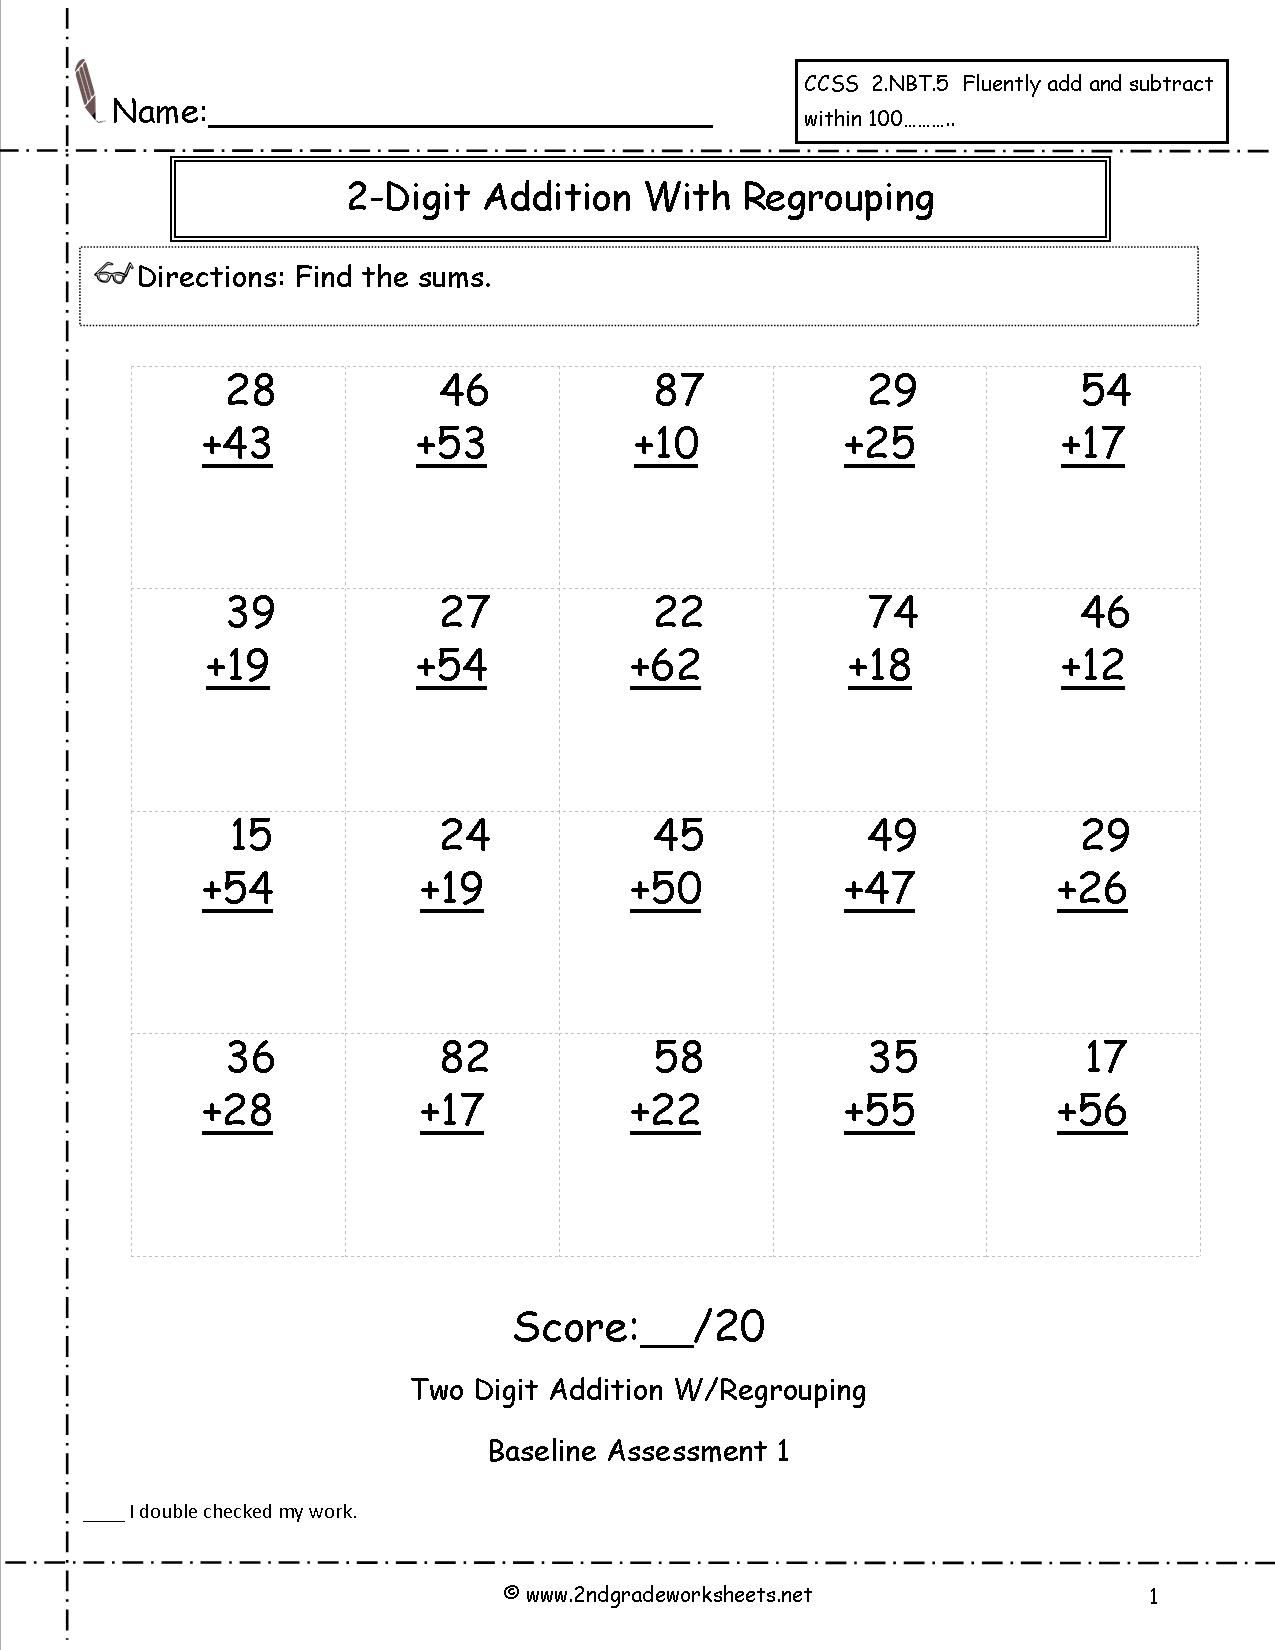 Two Digit Addition With Regrouping Assessment